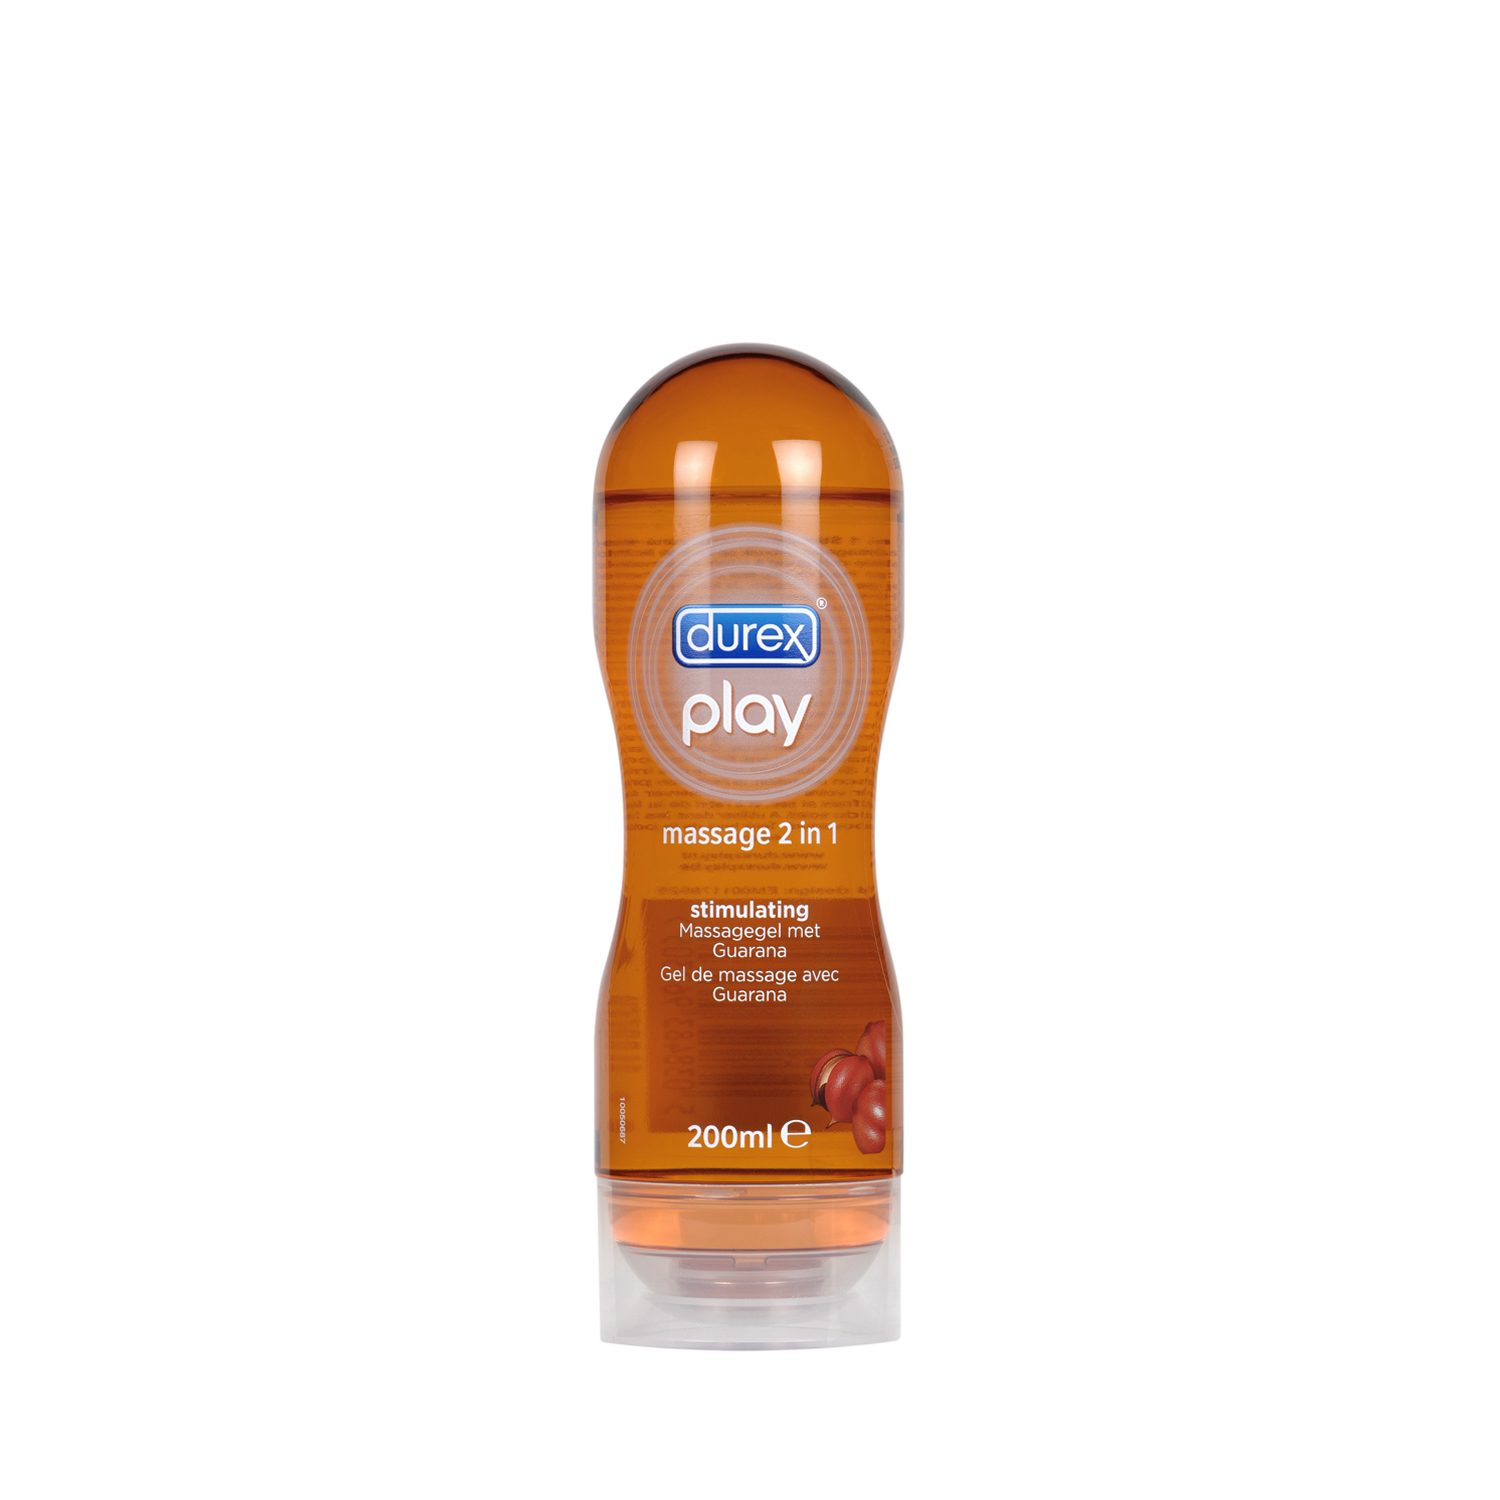 Play 2 en 1 Massage Stimulating Guarana